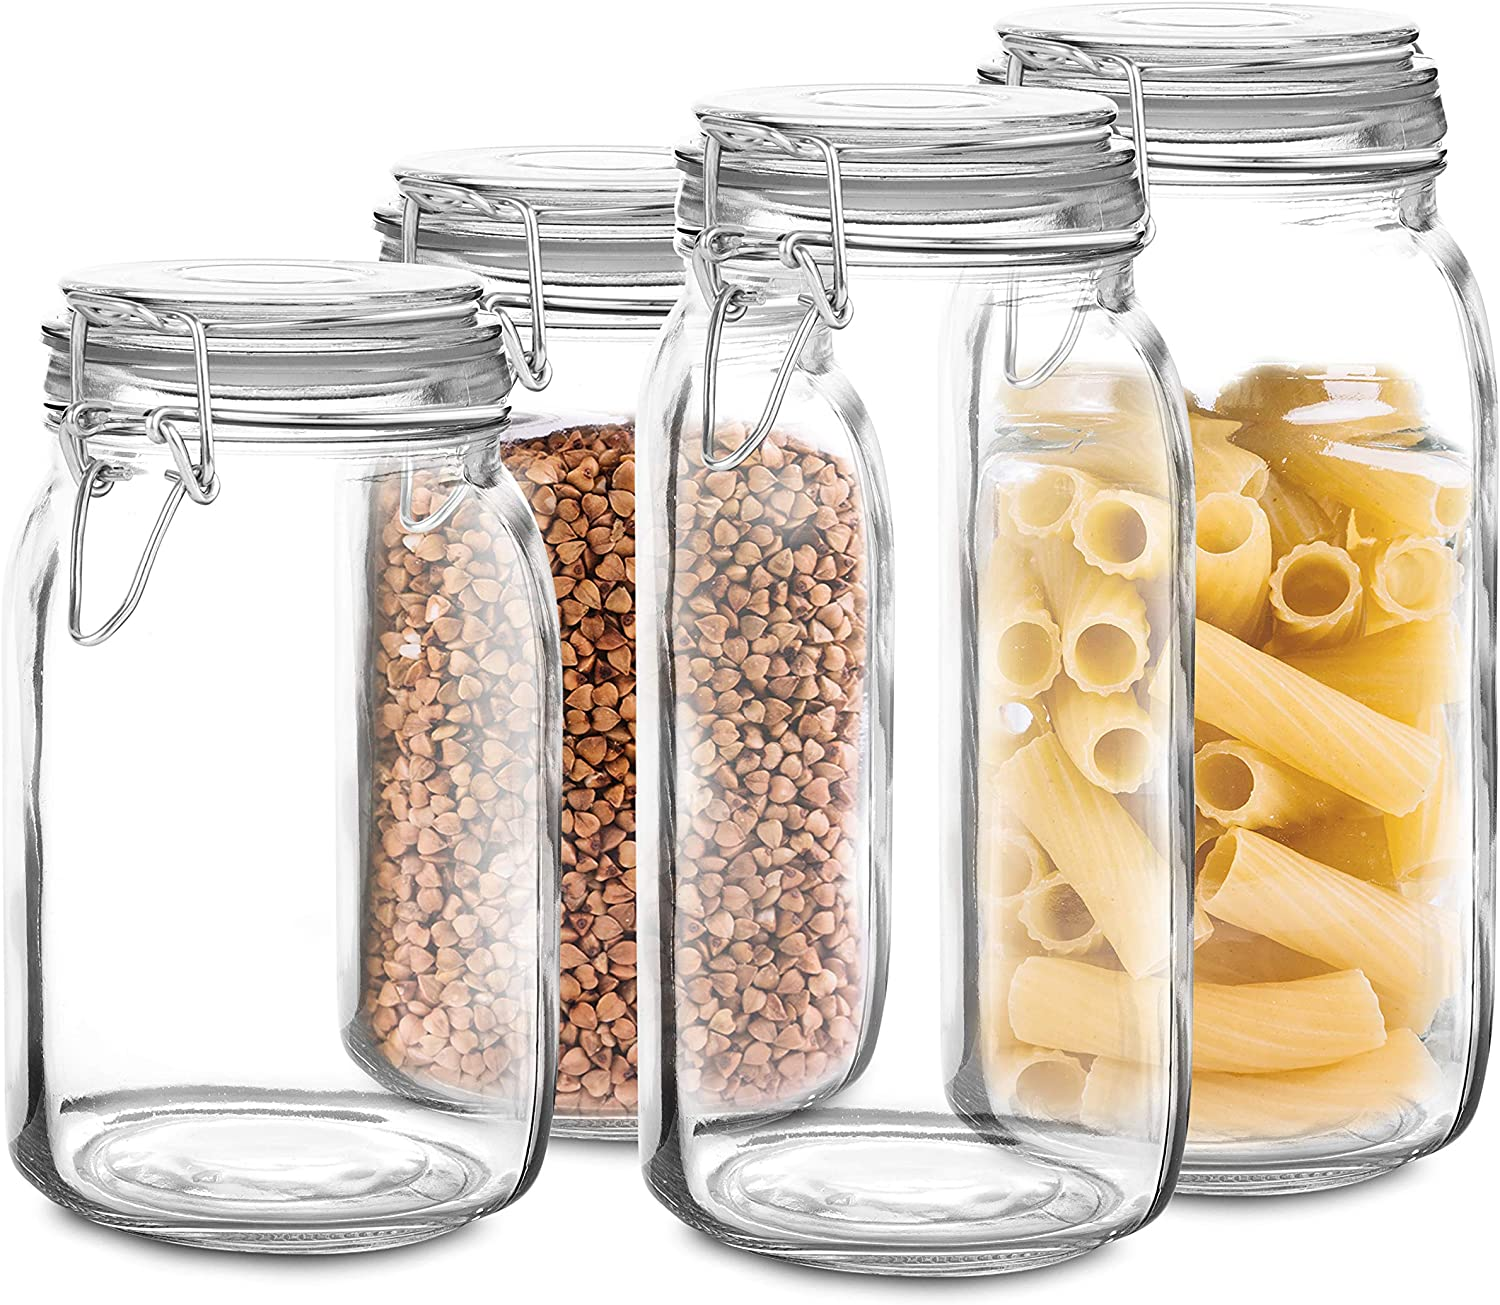 Set of 4 Glass mason Jar with Lid 2 Jars 34 Oz, 2 Jars 48 Oz | Airtight Glass Storage Container for Food, Flour, Pasta, Coffee, Candy, Dog Treats, Snacks & More | Glass Organization Canisters